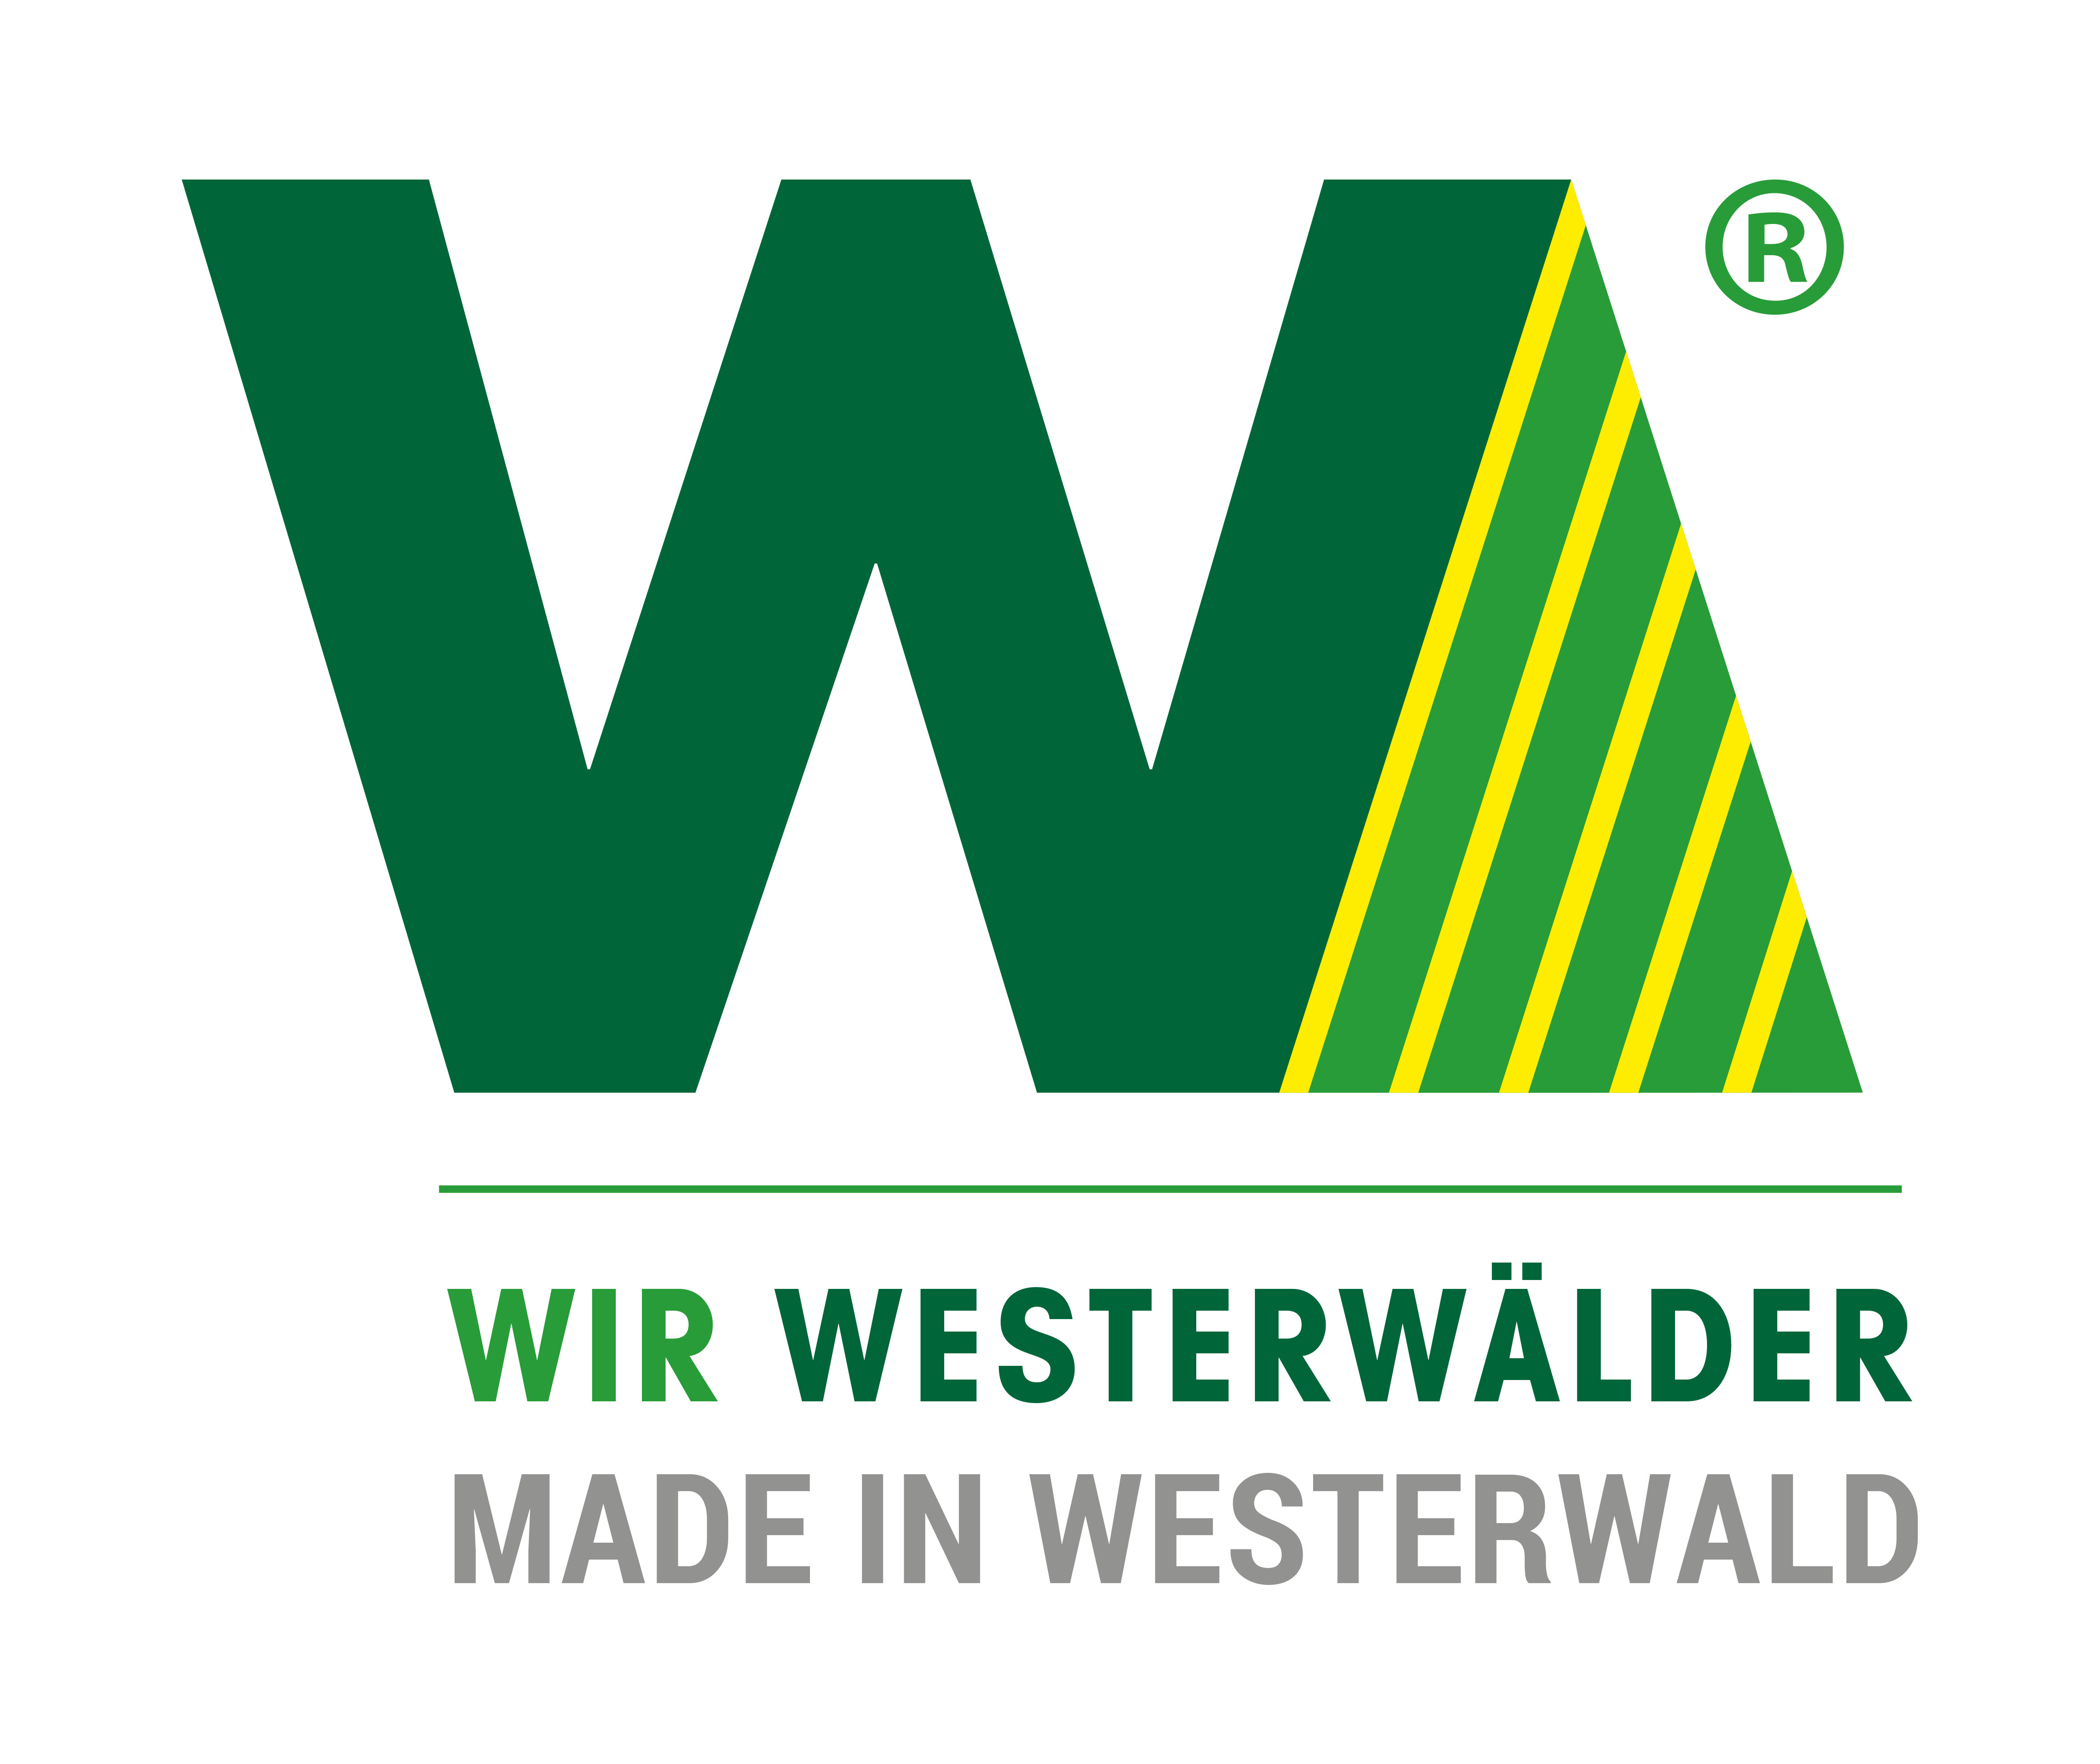 made in westerwald logo